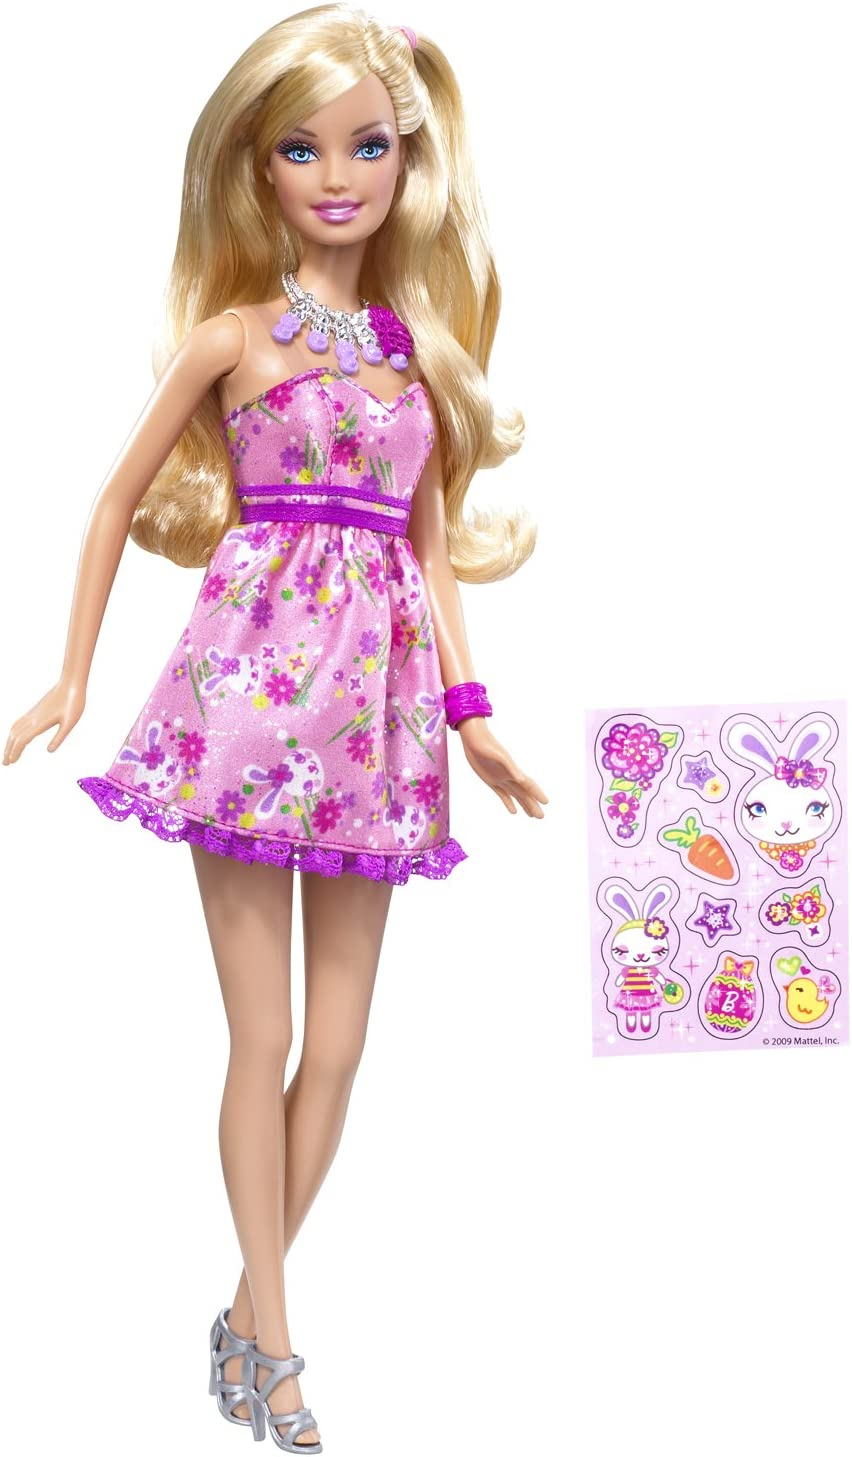 Max 81% OFF Barbie Import Easter Doll